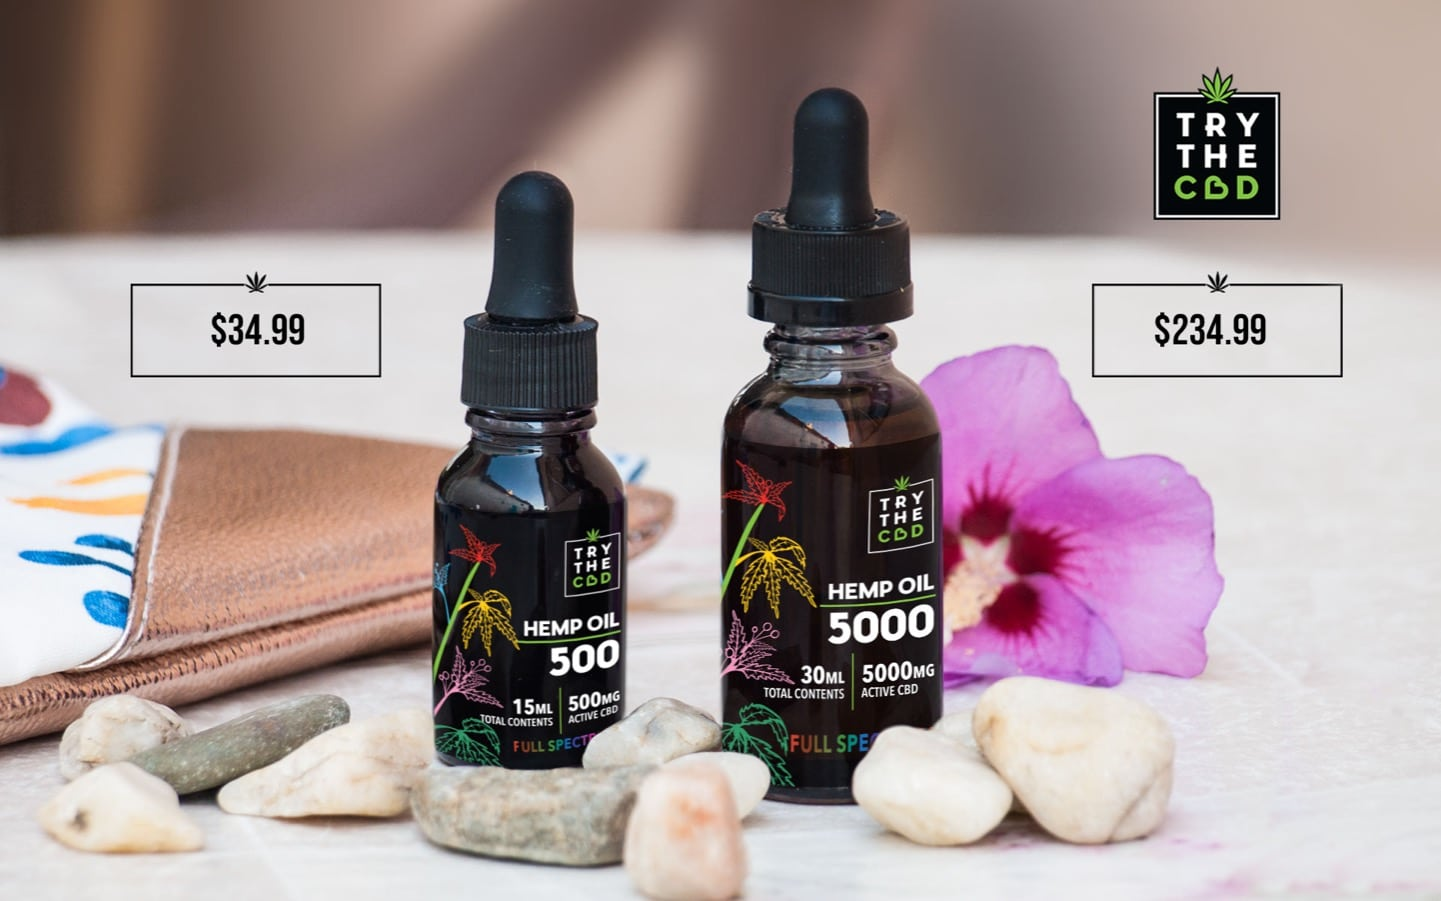 5000mg high CBD Oil Tincture for $234.99!   500mg CBD Tincture for $34.99!